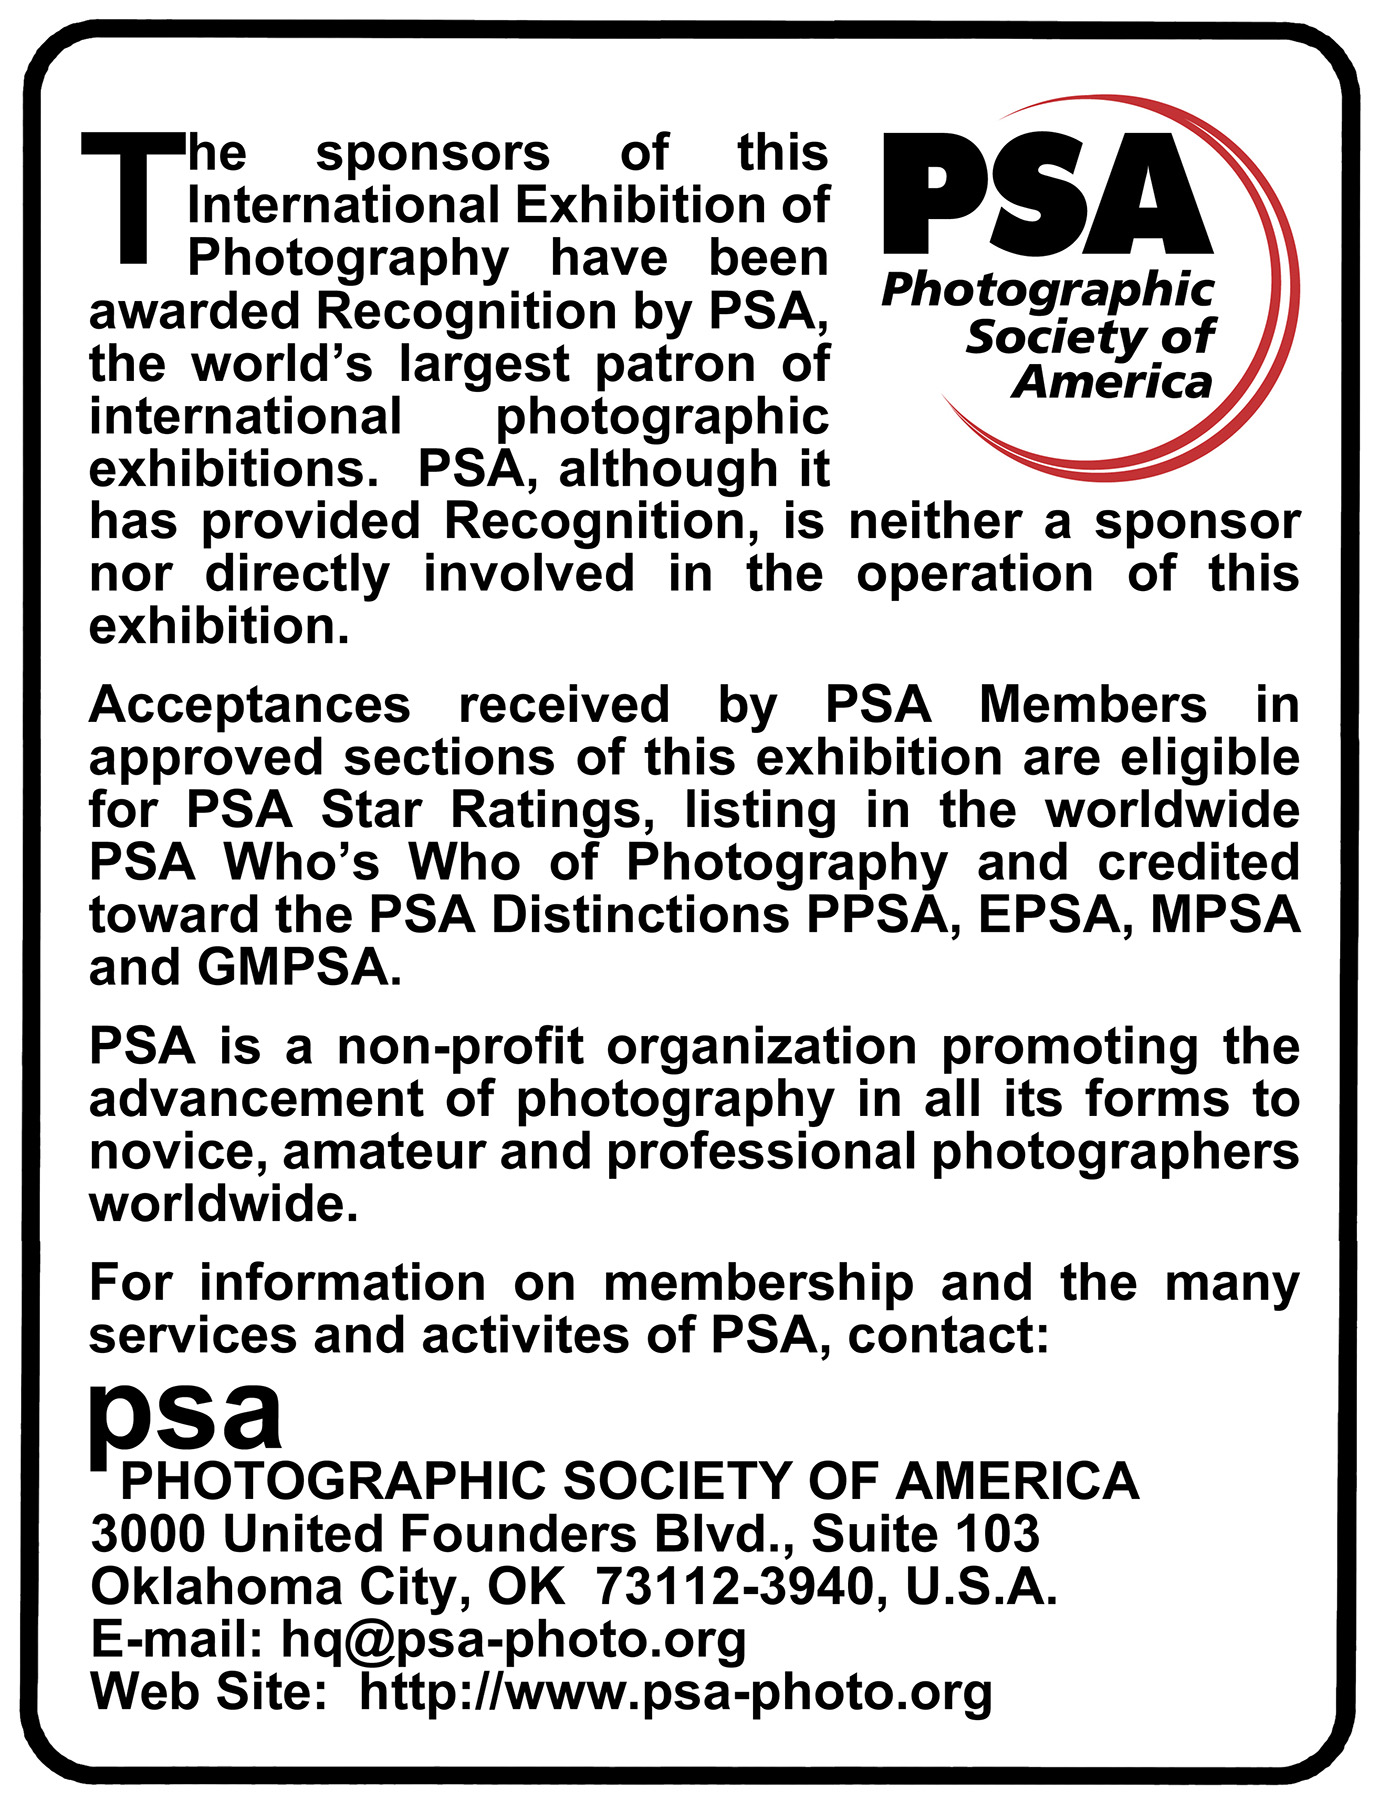 Recognized by PSA Photographic Society of America